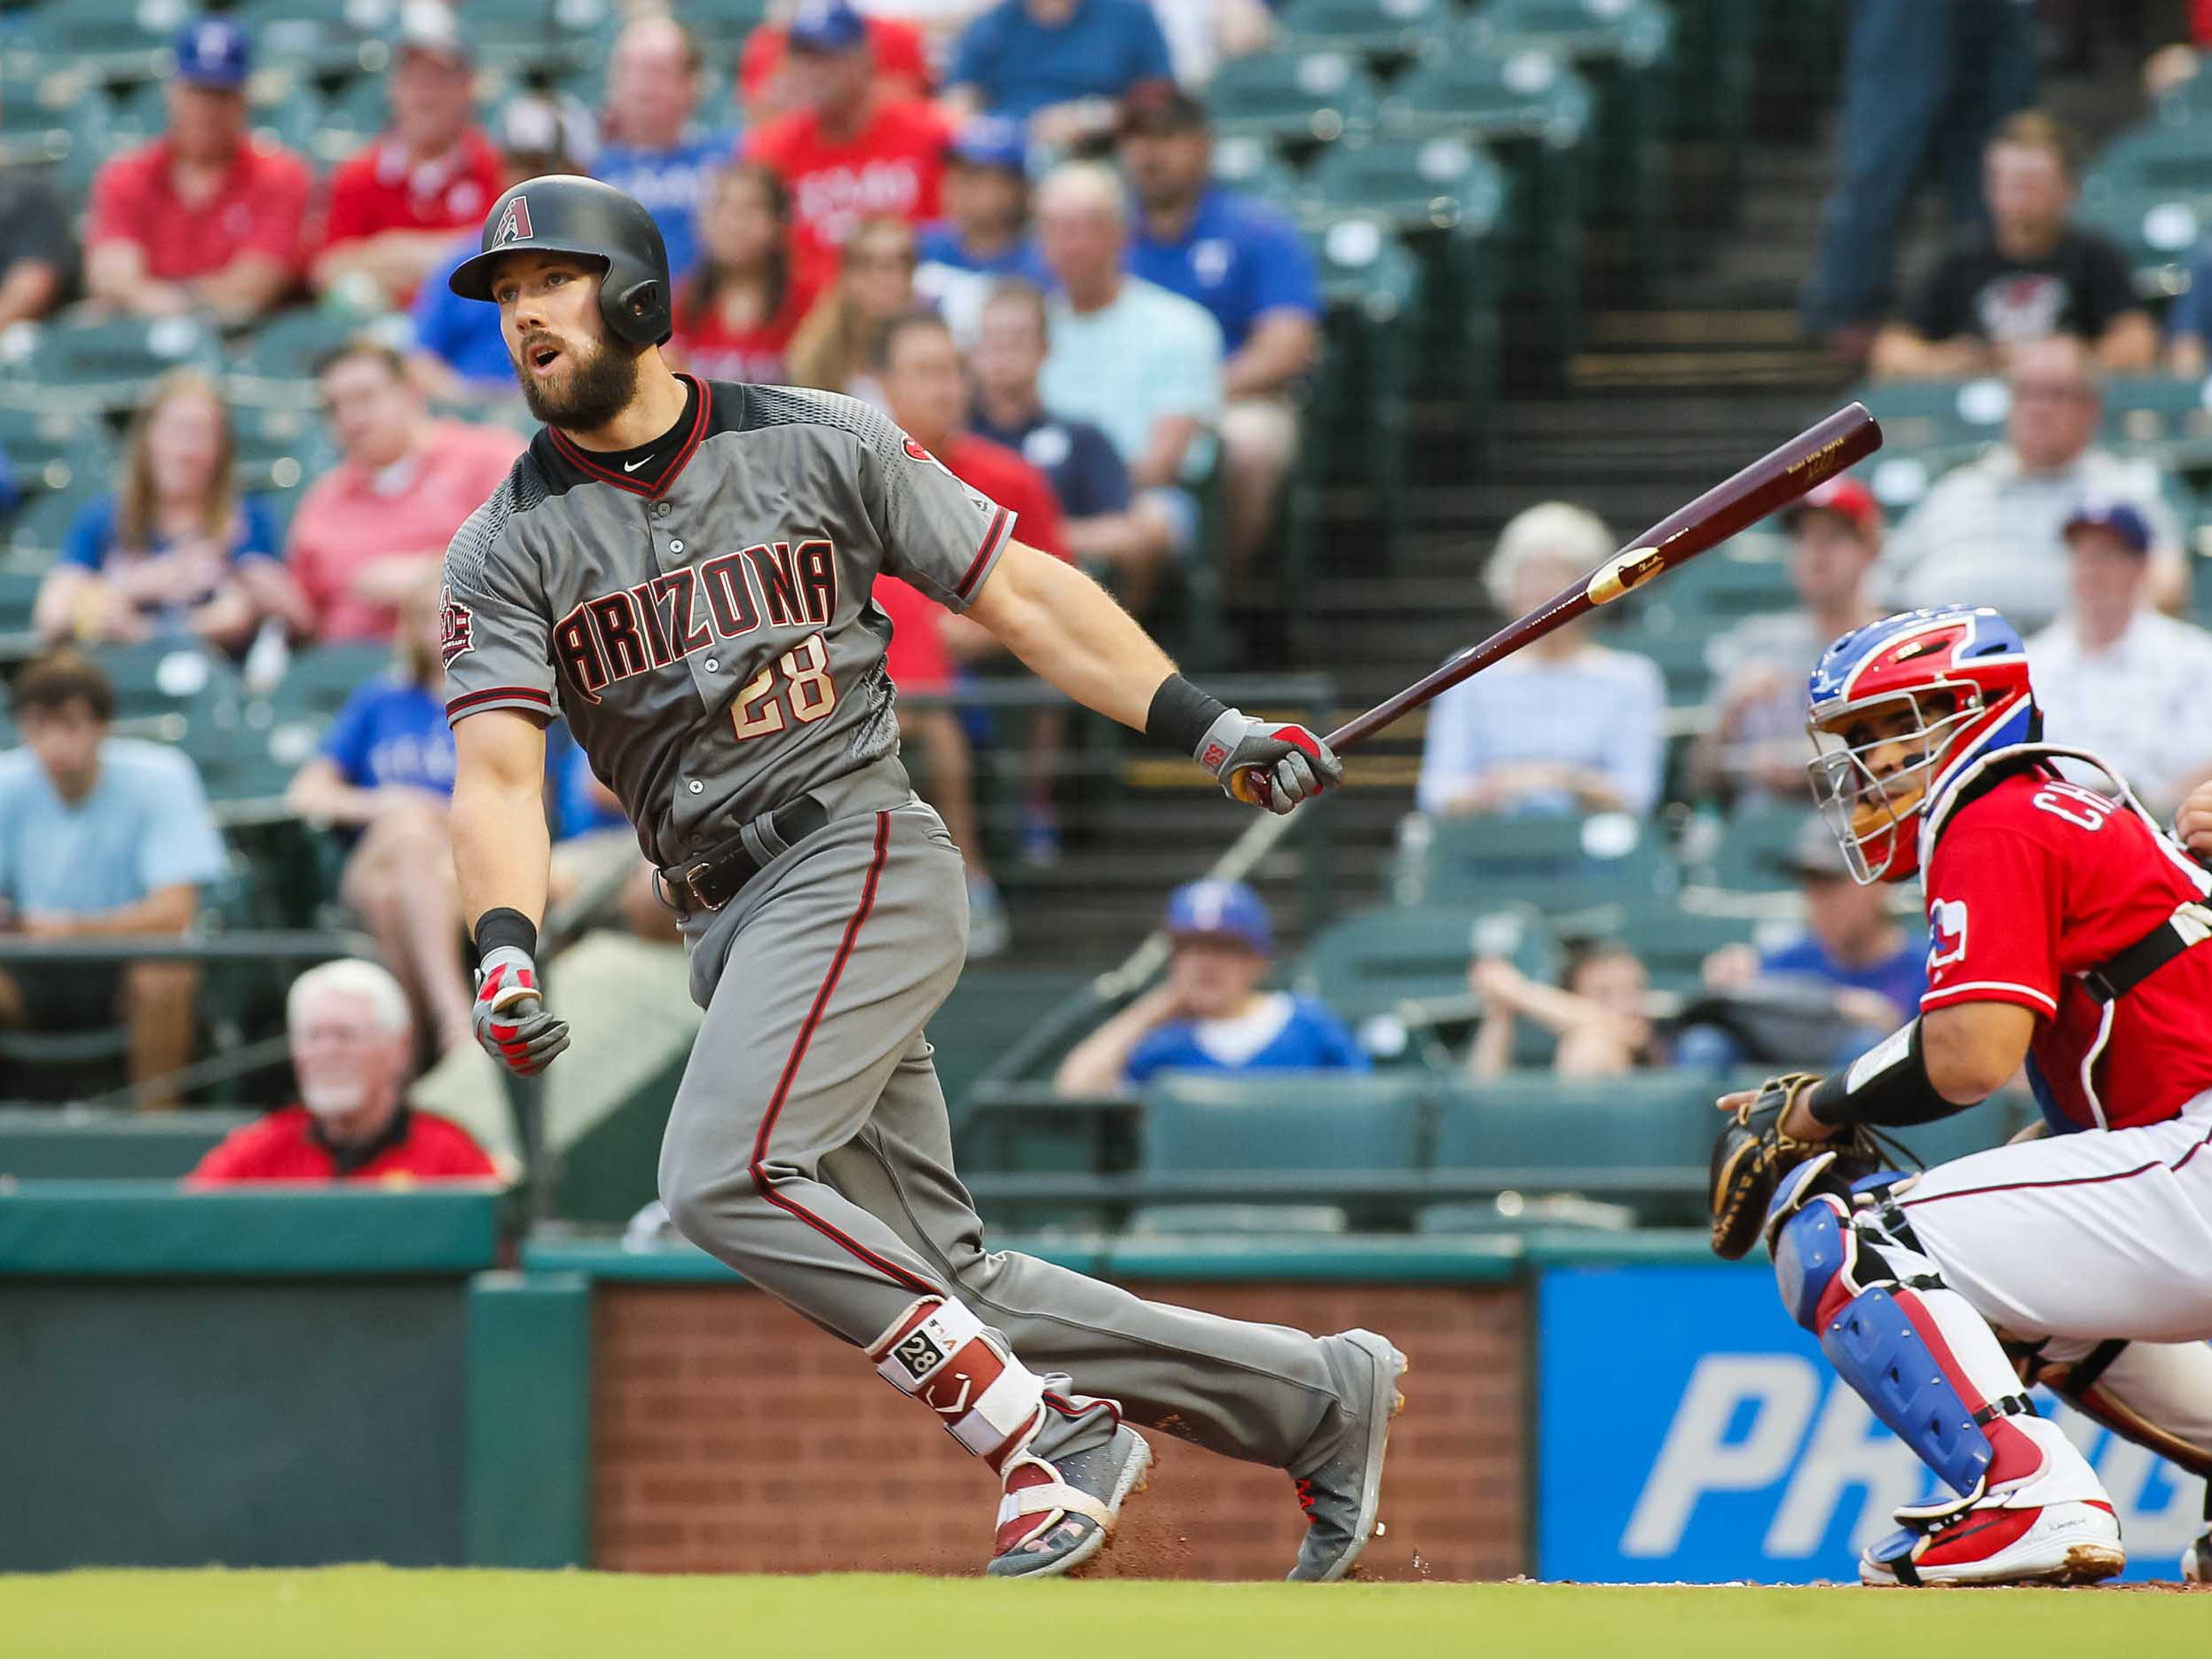 Aug 13, 2018; Arlington, TX, USA; Arizona Diamondbacks right fielder Steven Souza Jr. (28) hits an RBI double in the first inning against the Texas Rangers at Globe Life Park in Arlington. Mandatory Credit: Ray Carlin-USA TODAY Sports